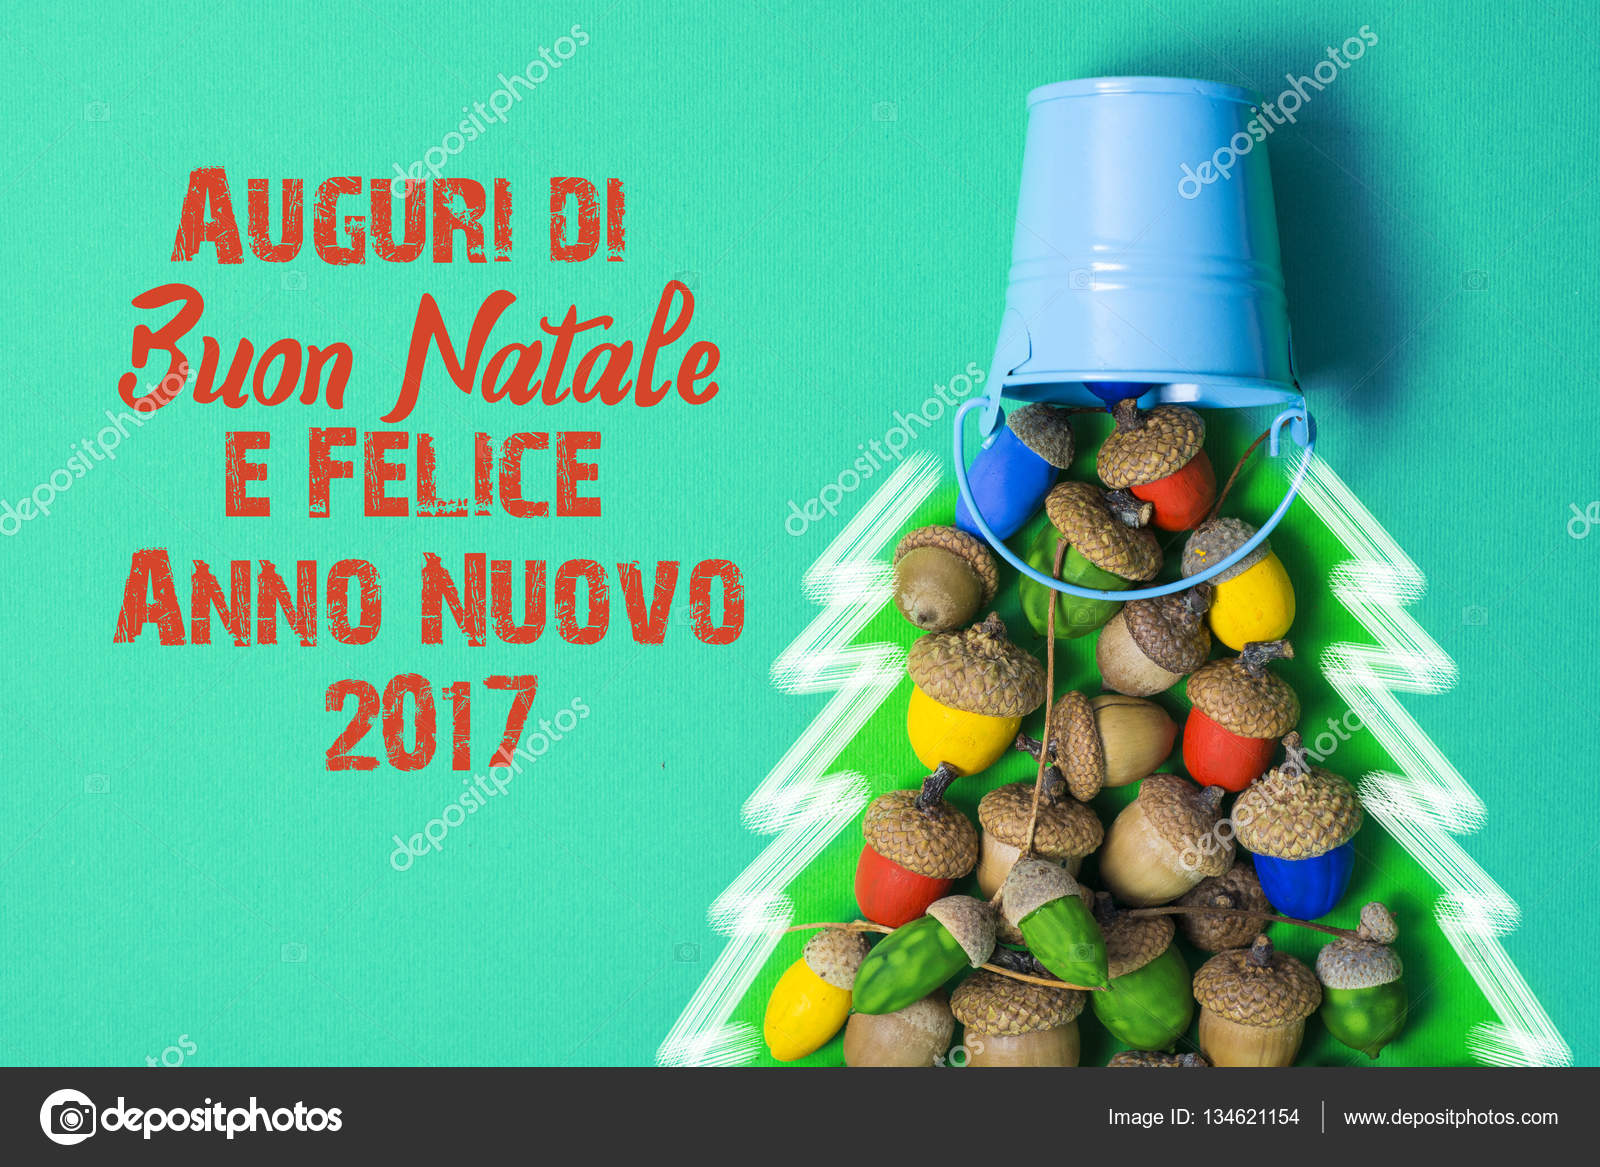 merry christmas and happy new year in italian language handmade christmas tree decorations 2017 card - Merry Christmas And Happy New Year In Italian